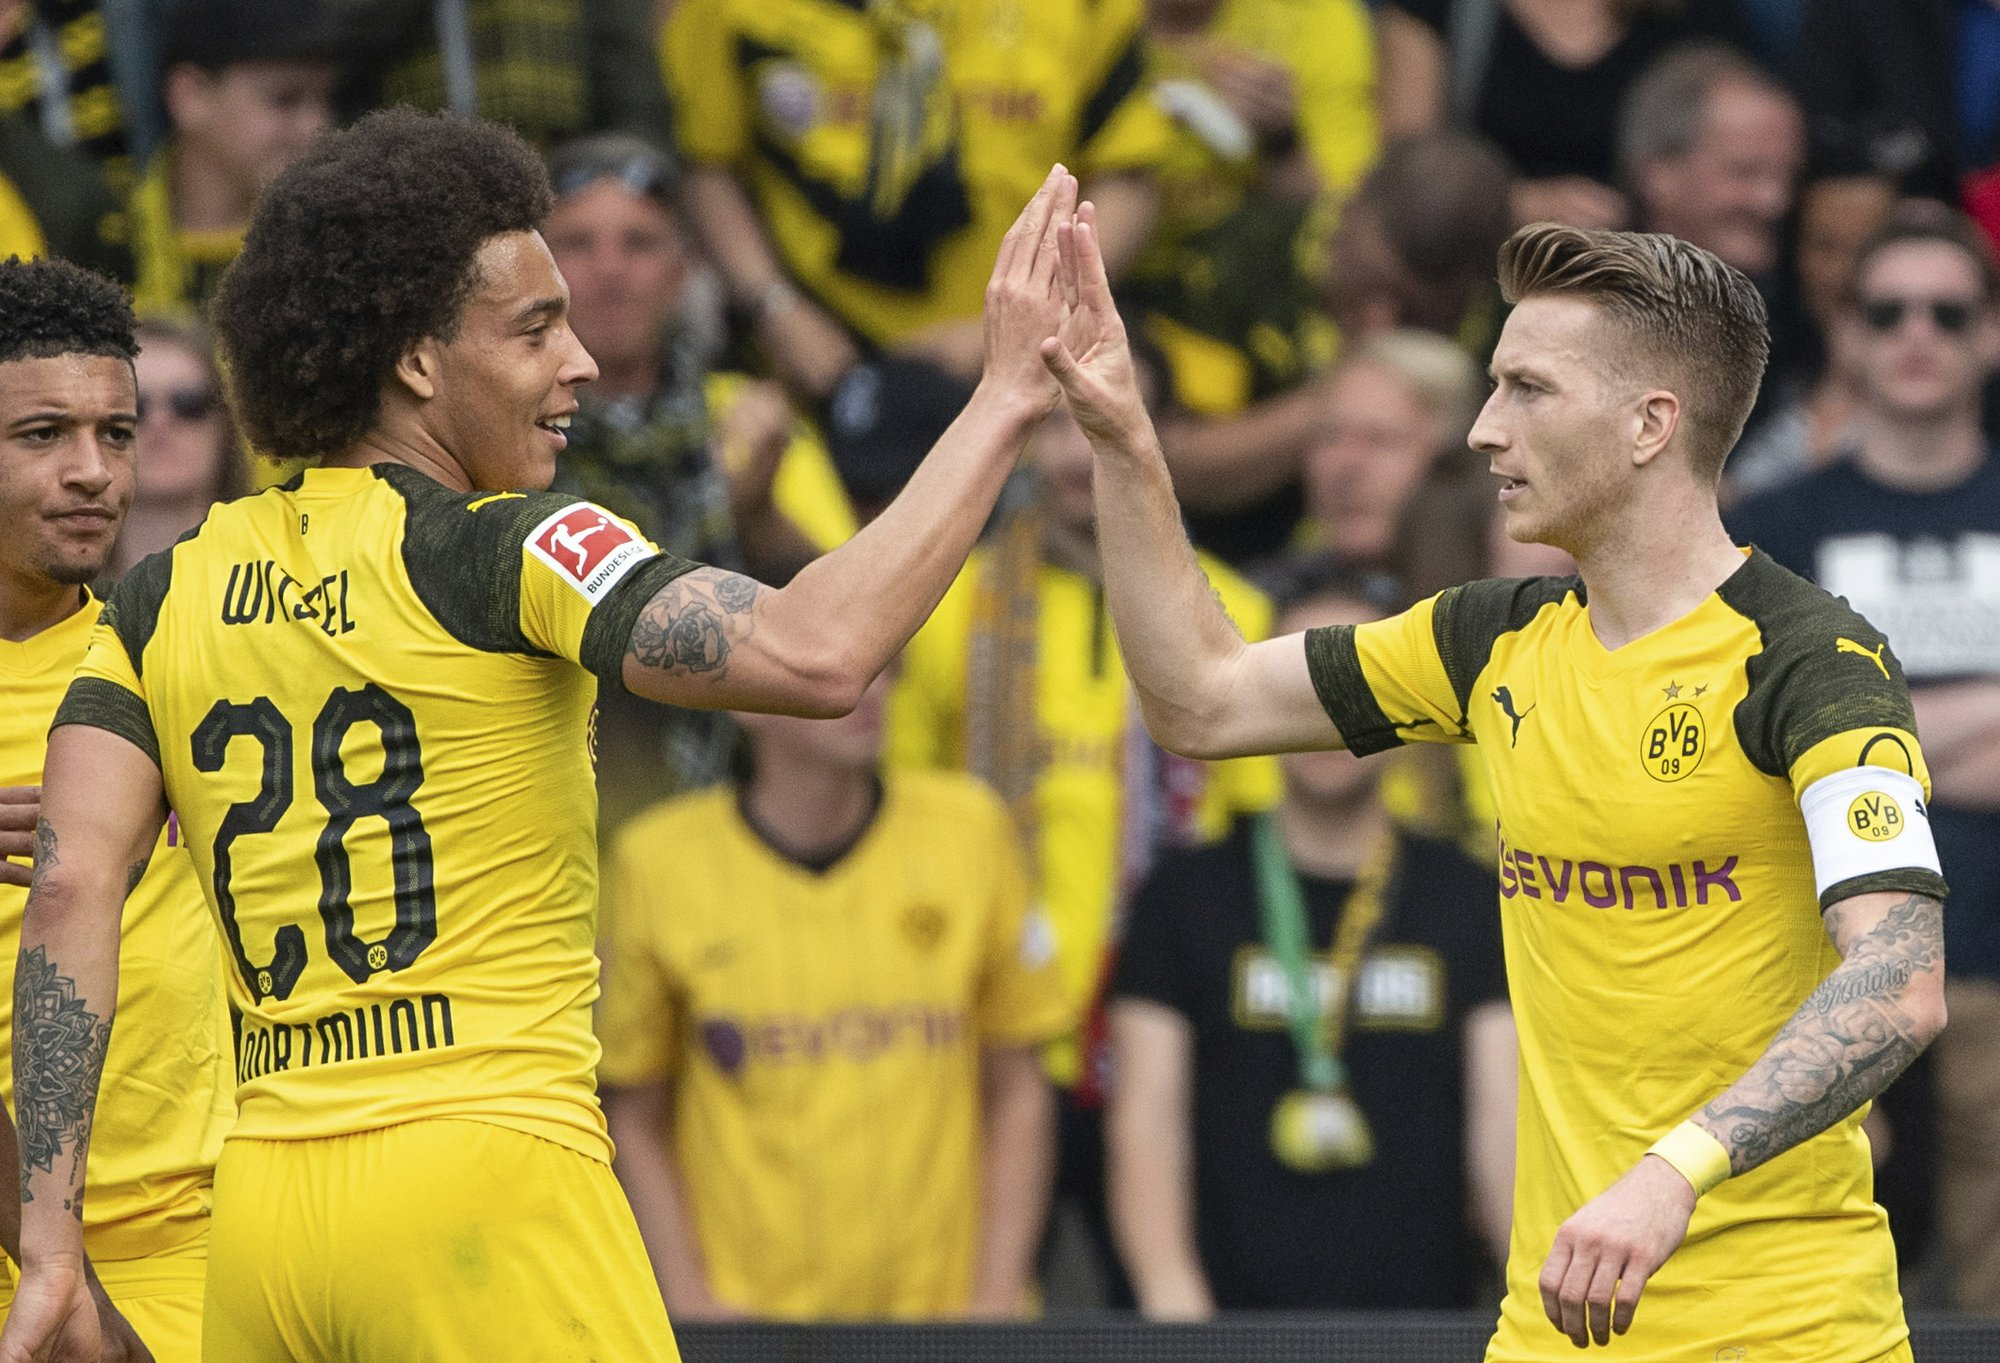 Dortmund keeps pace with Bayern in tight Bundesliga race